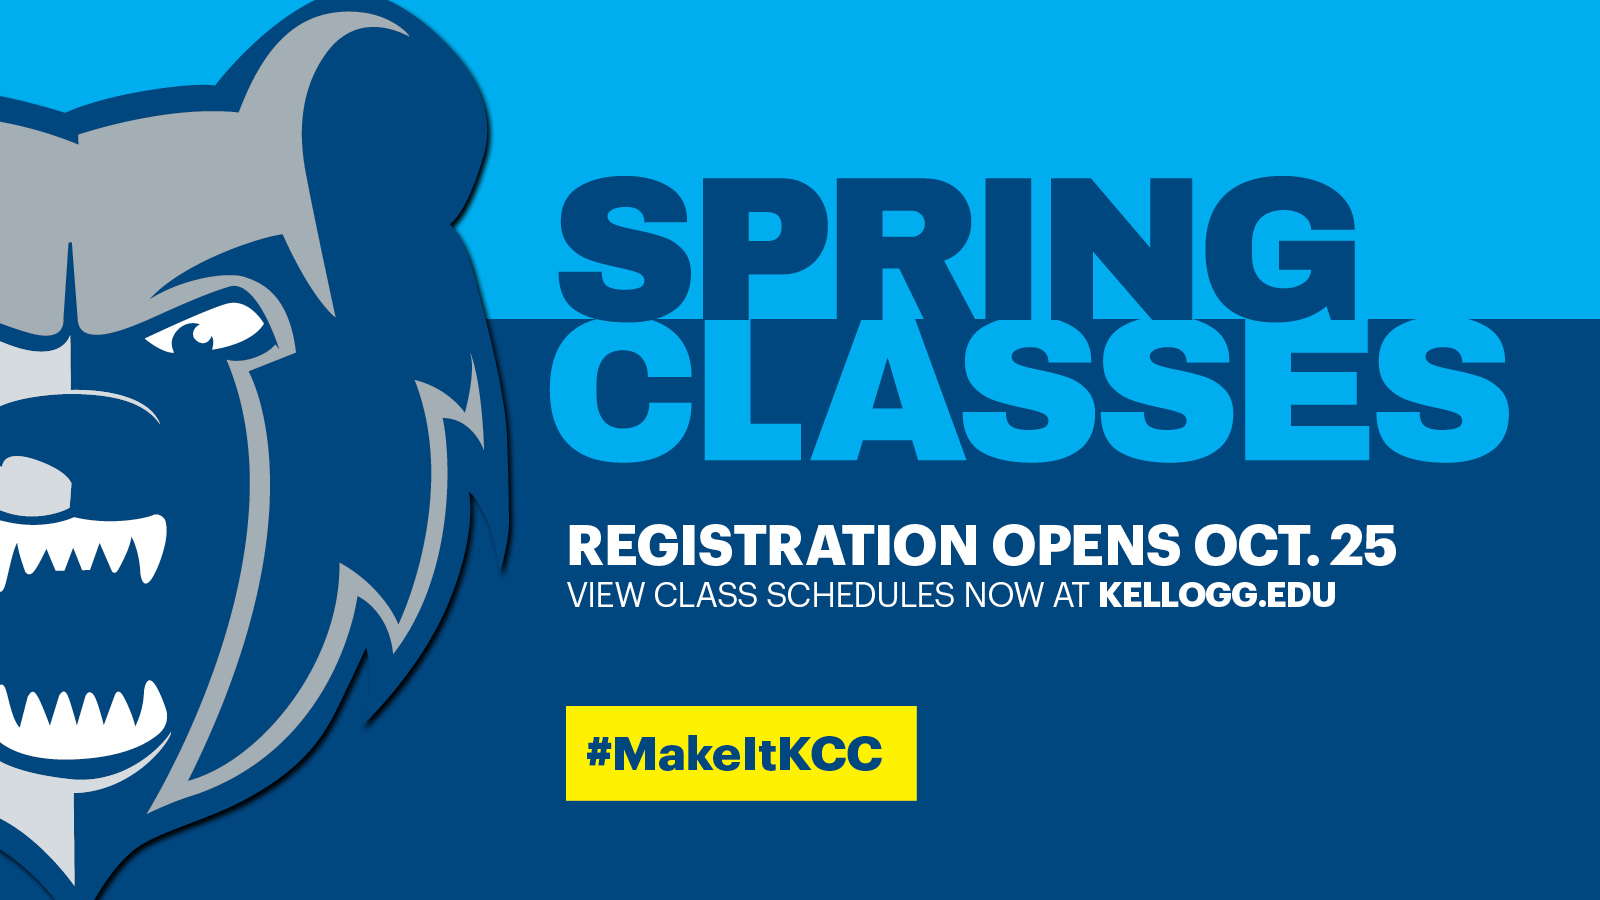 """The Bruin head logo on a text slide that reads """"Spring classes. Registration opens Oct. 25. View class schedules now at kellogg.edu. #MakeItKCC."""""""